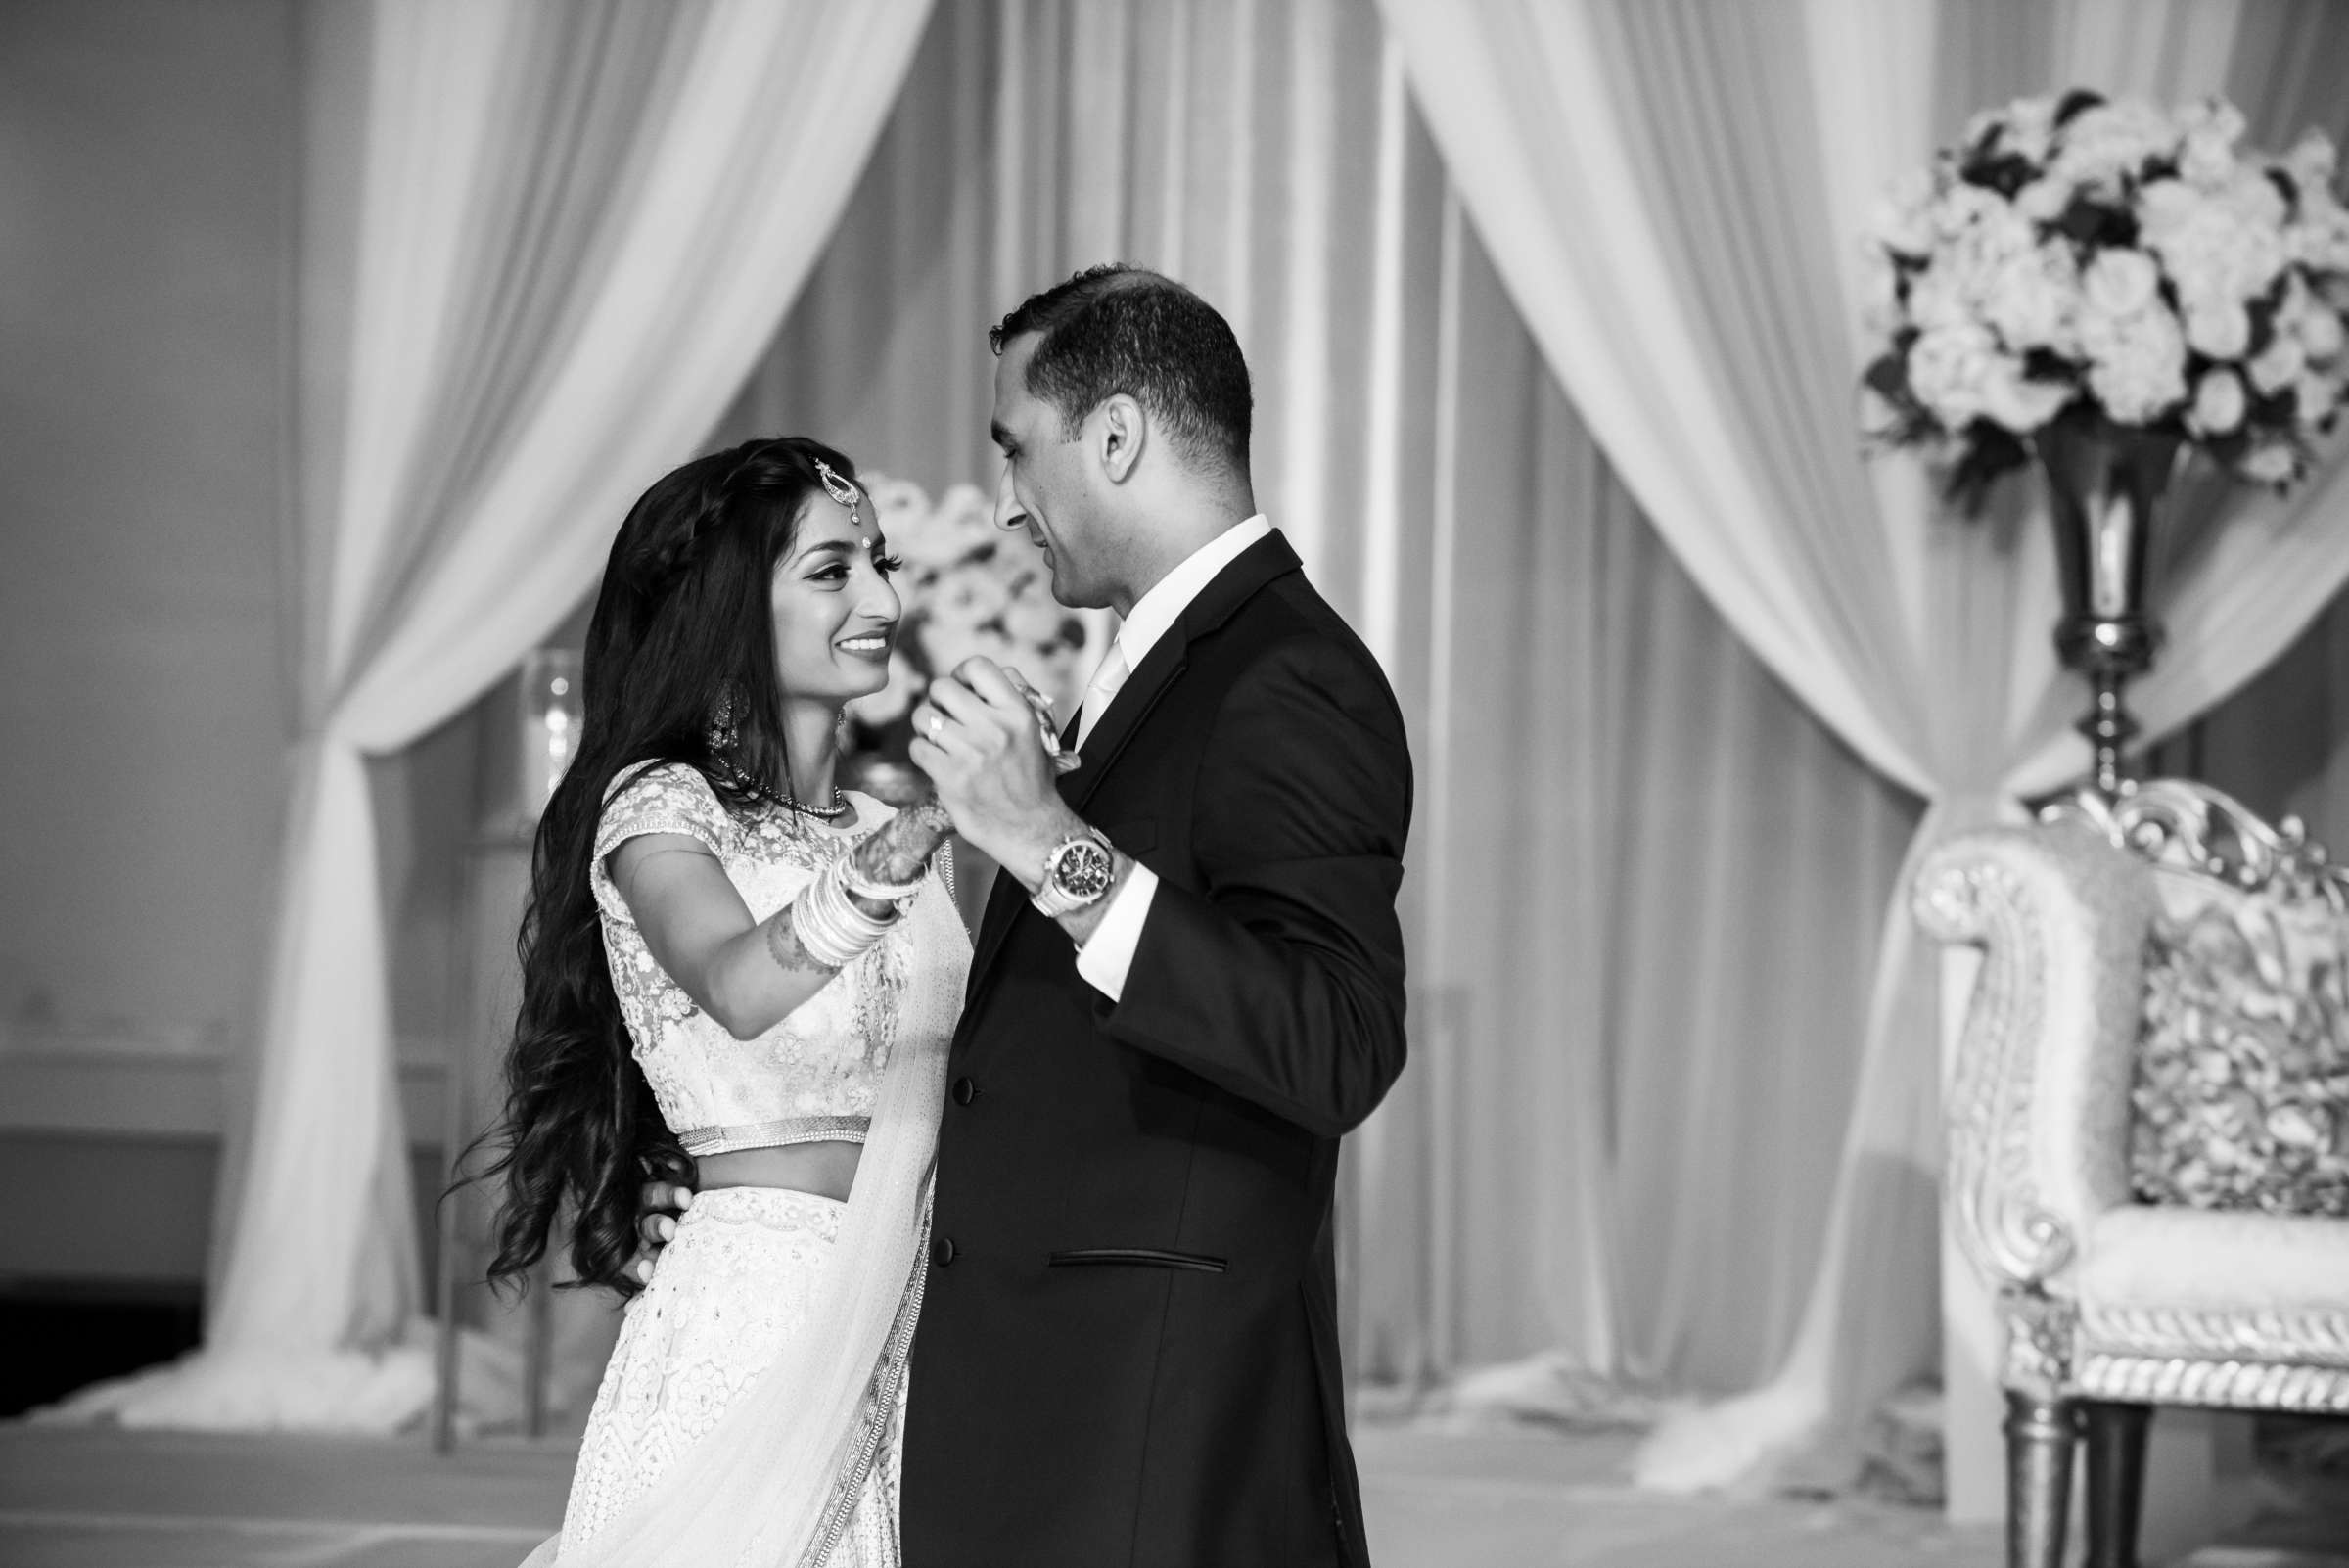 The Westin Carlsbad Resort and Spa Wedding coordinated by Shilpa Patel Events, Ami and Amit Wedding Photo #225 by True Photography